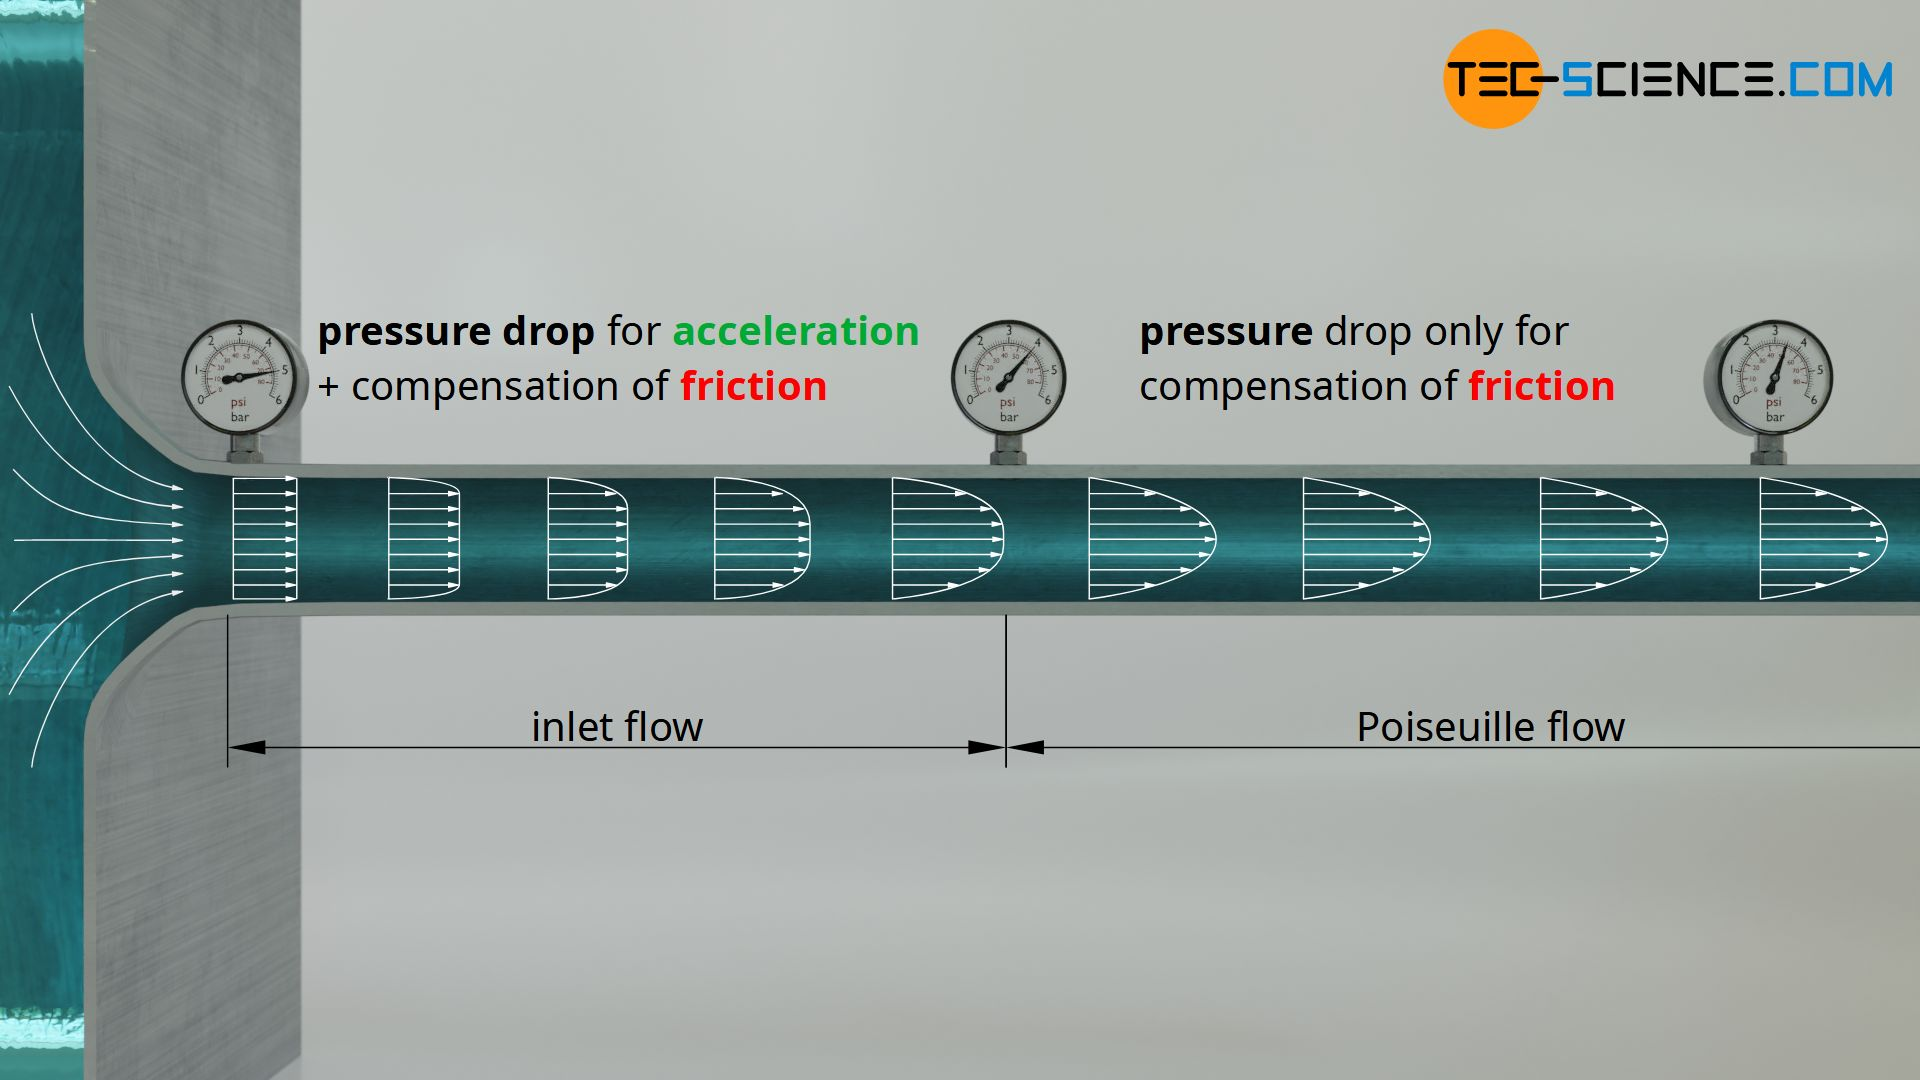 Inlet flow and Poiseuille flow